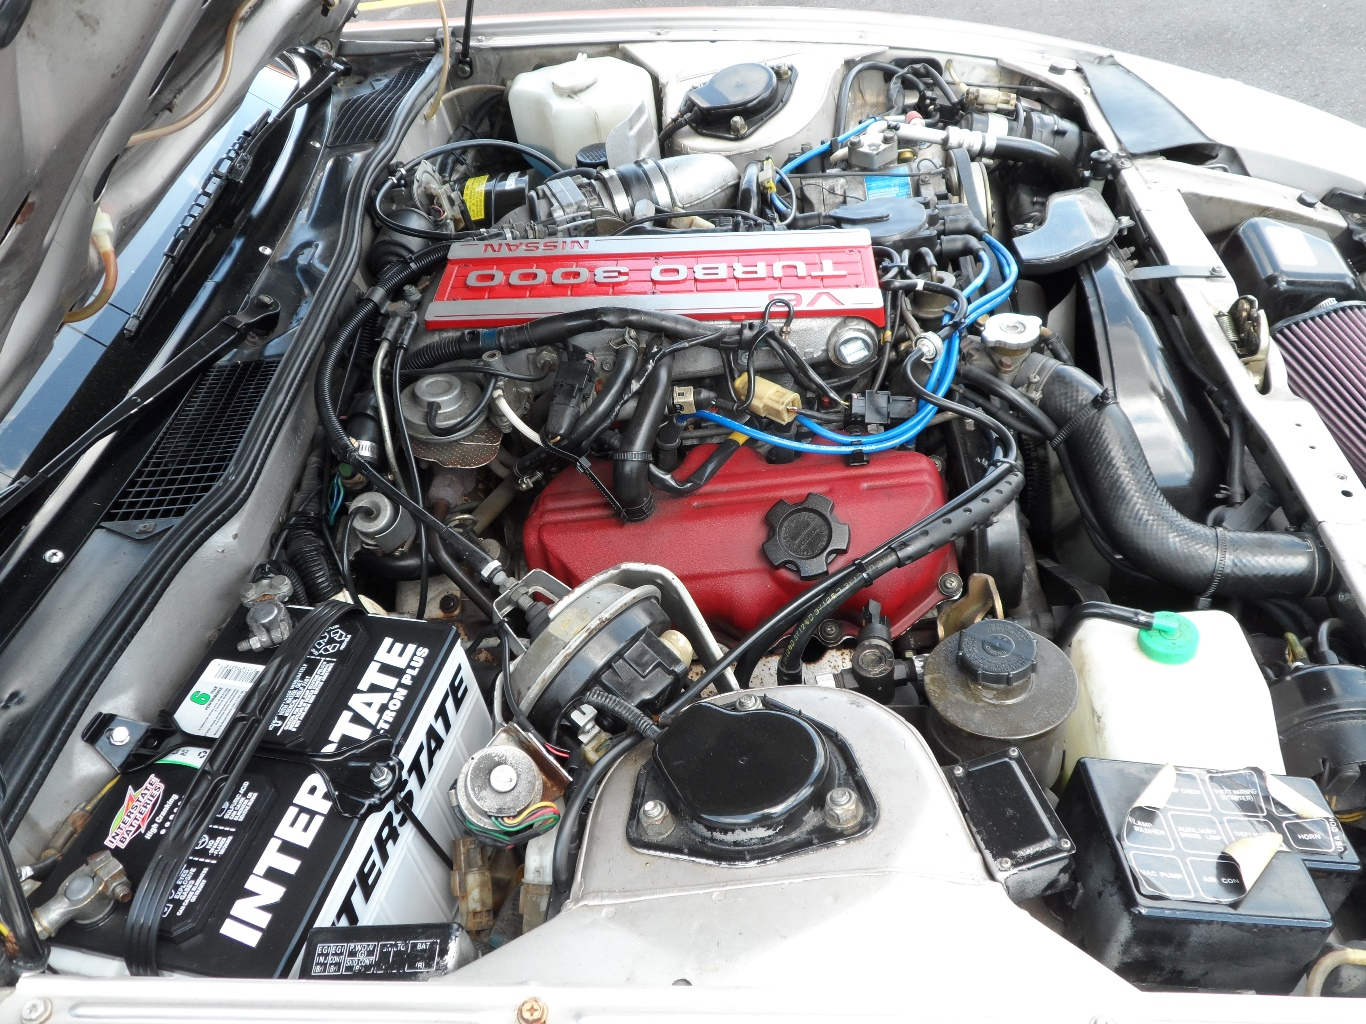 1988 Nissan 300zx Engine Bay ✓ Reended Carrhnissanufikco: 300zx Engine Bay  Diagram At Selfit.